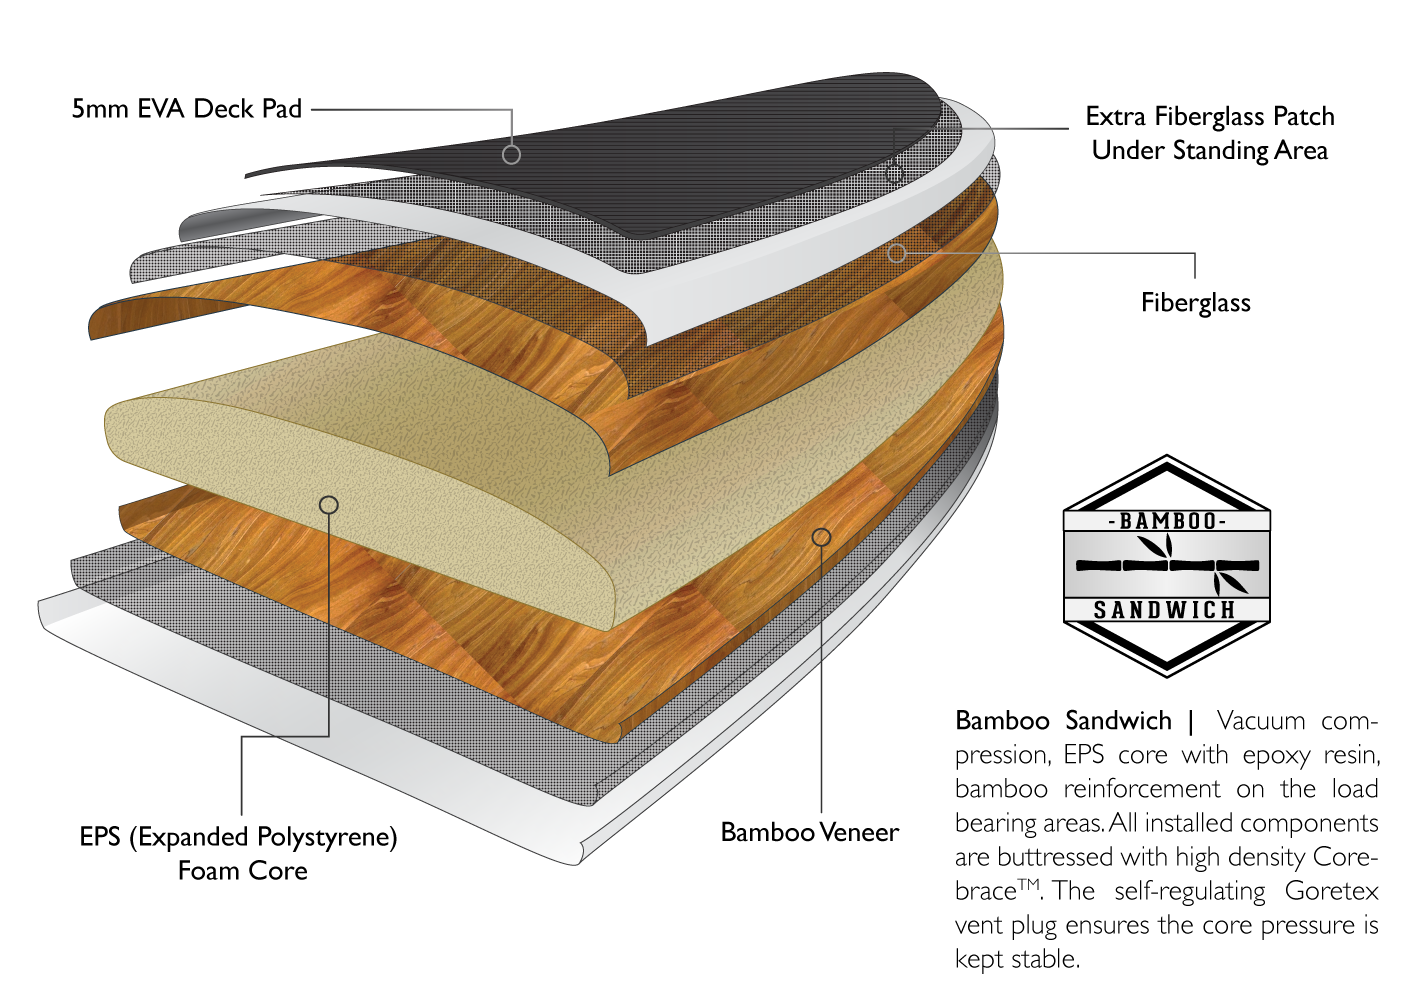 Bamboo sandwich construction graphic